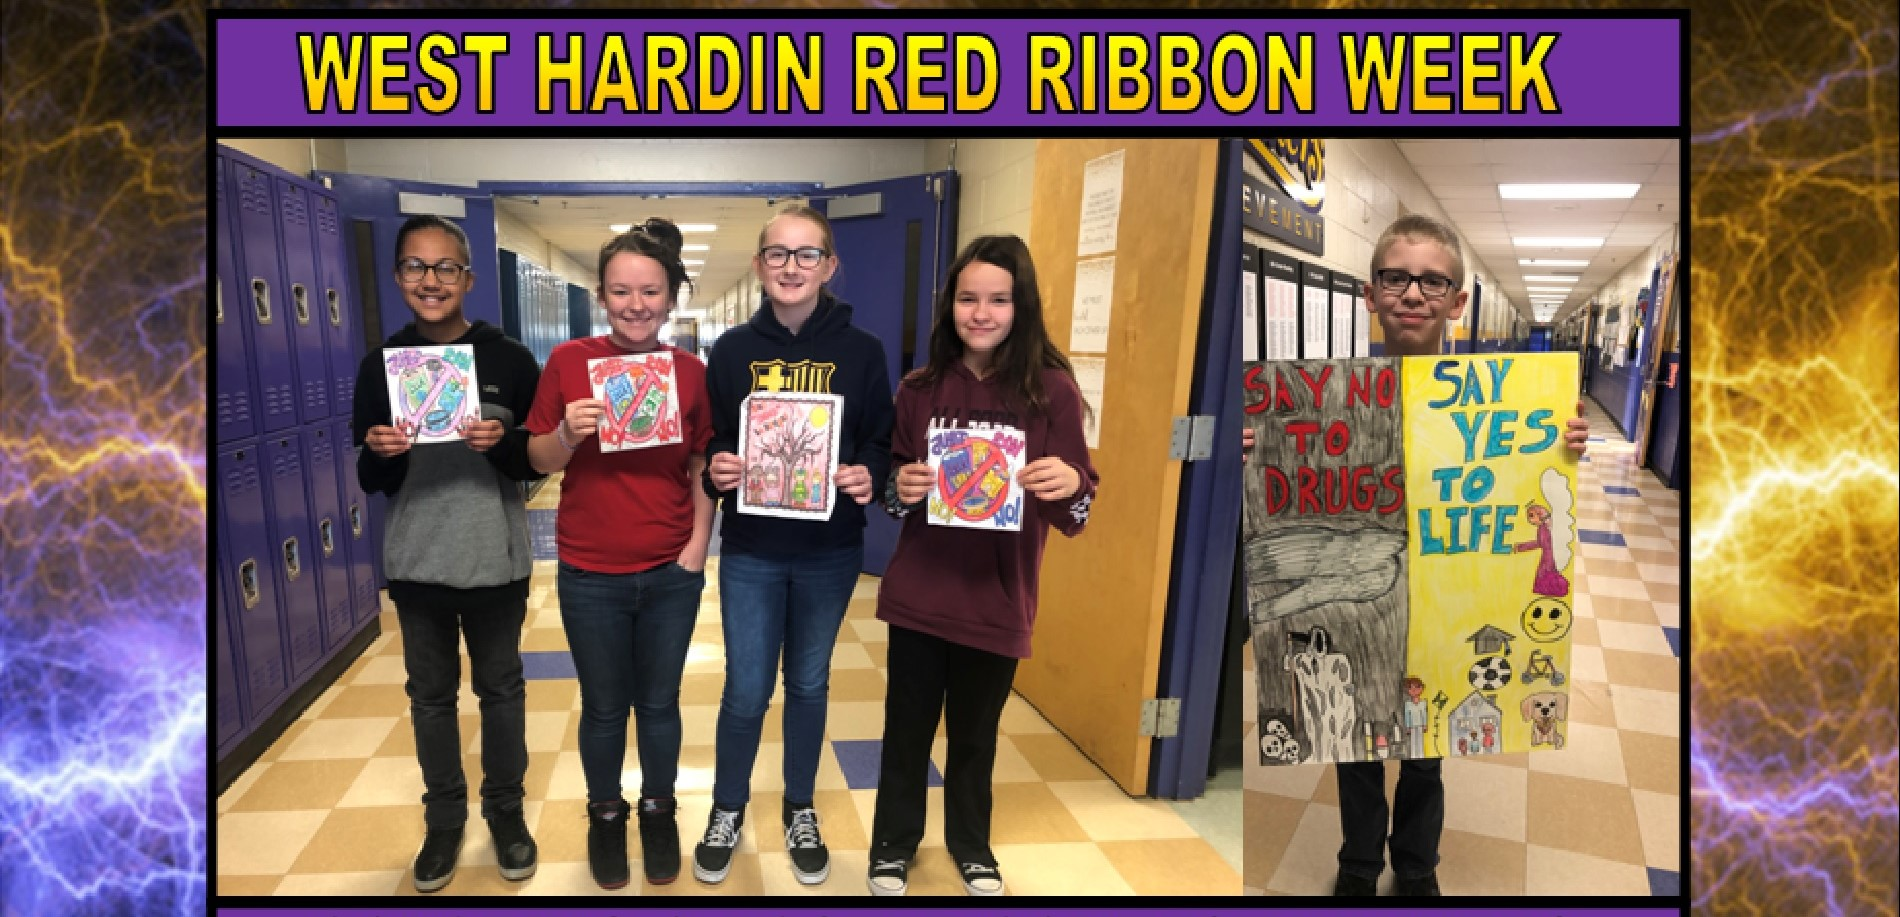 Red Ribbon Week Coloring & Poster Contest Winners (L-R): Alyzah Nation; Layla Stallins-Tucker; Abby Van Den Berg; Molly Spiers & Bruce Mowen.